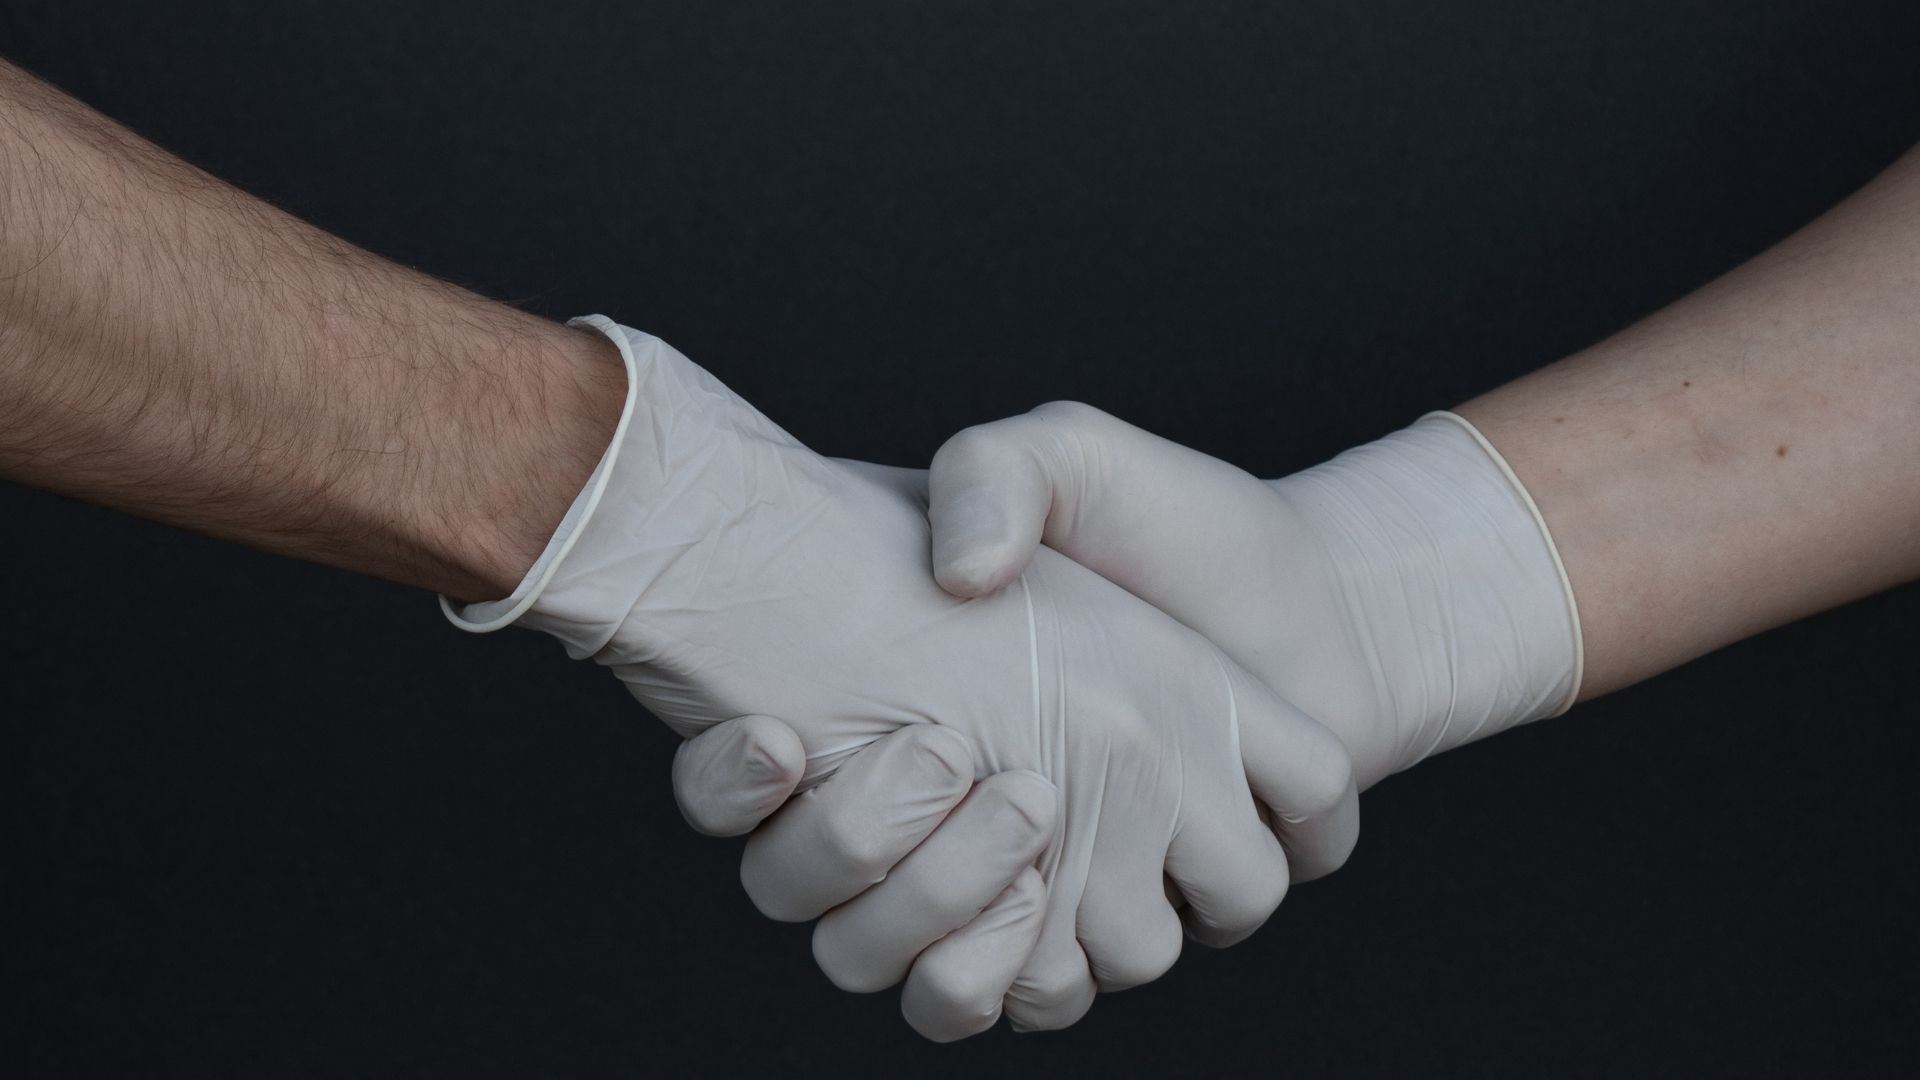 shaking hands with gloves